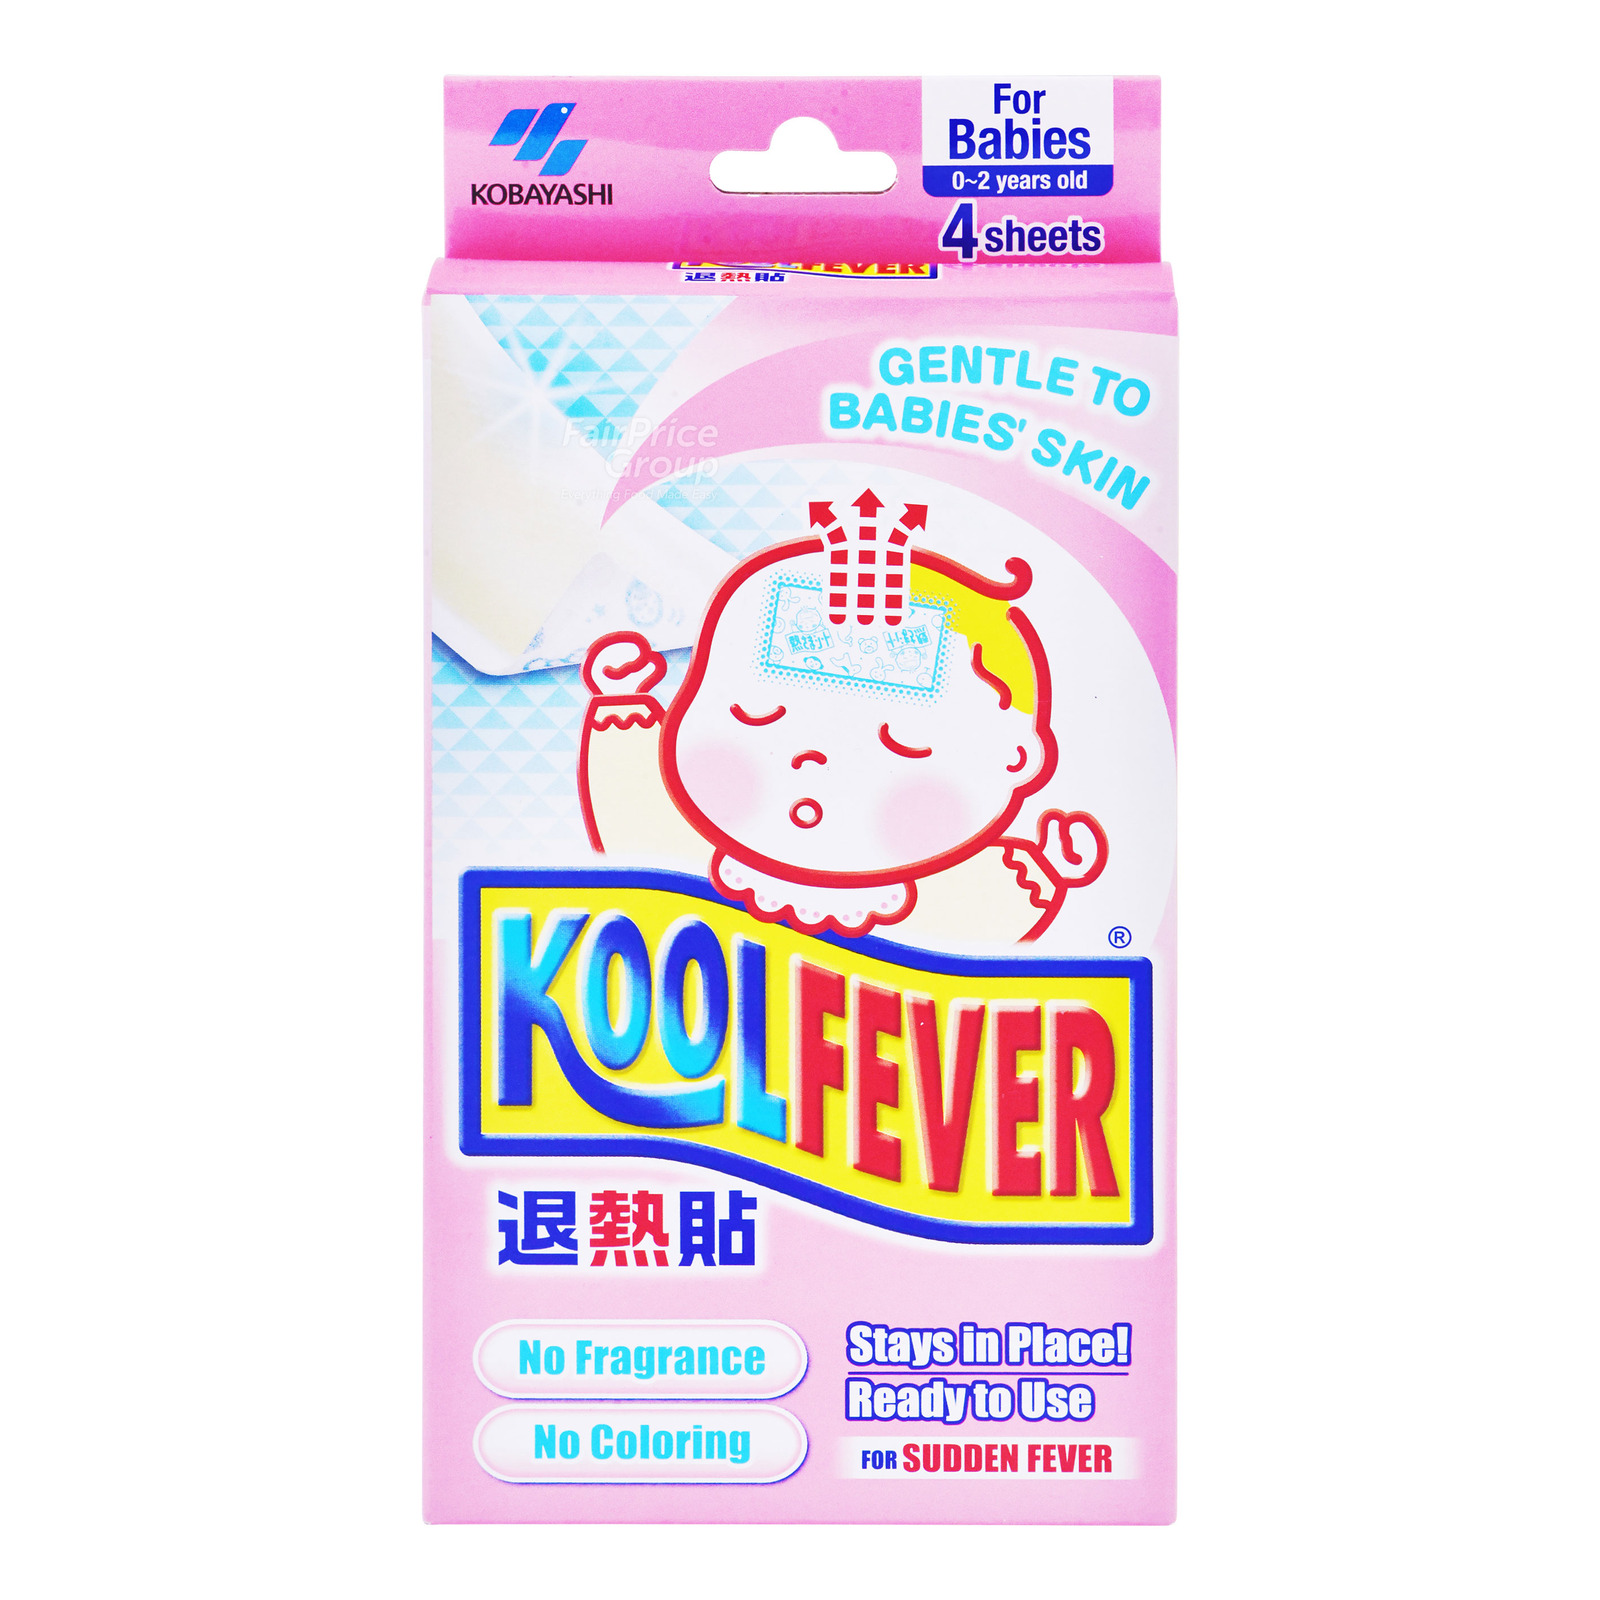 Kool Fever Cooling Gel Sheets - Babies (0-2 Years Old)